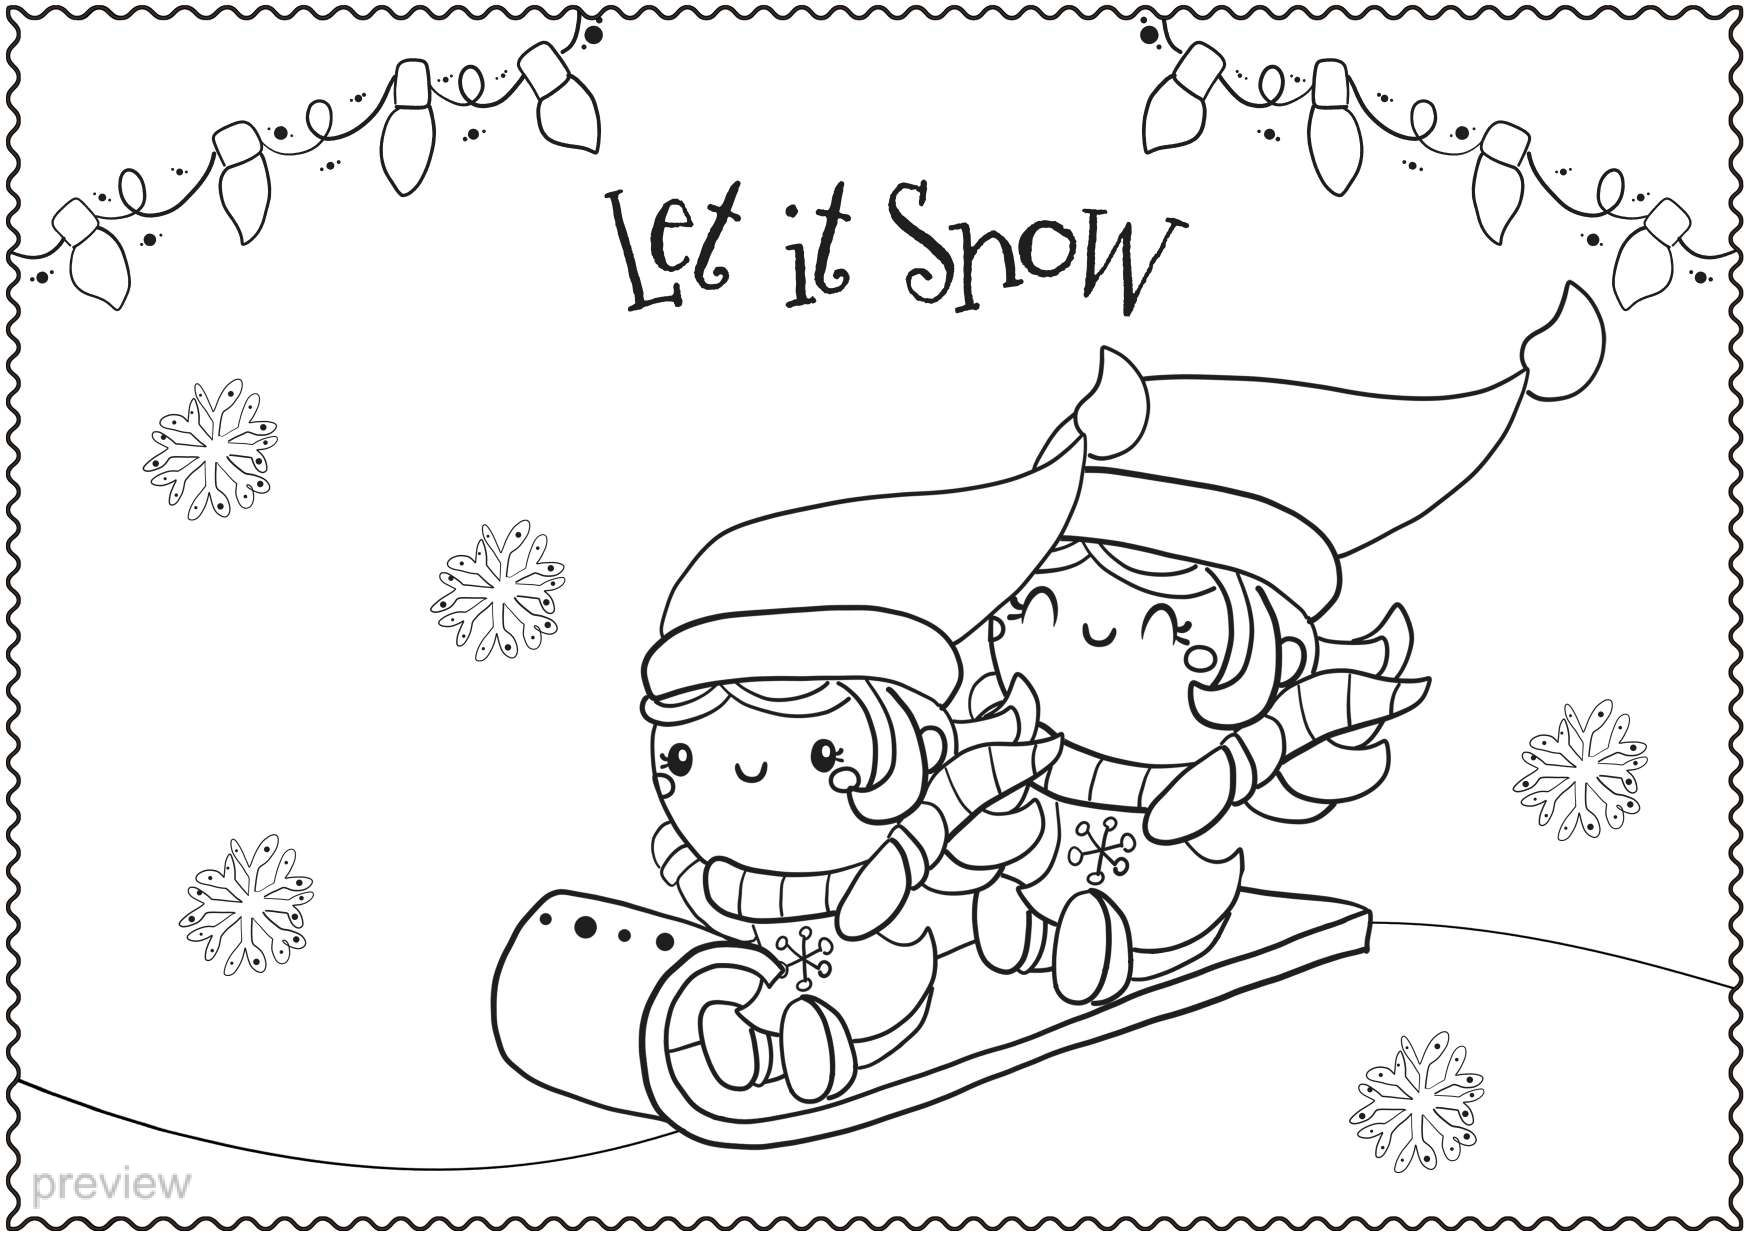 Pin On Winter Activities For Kids